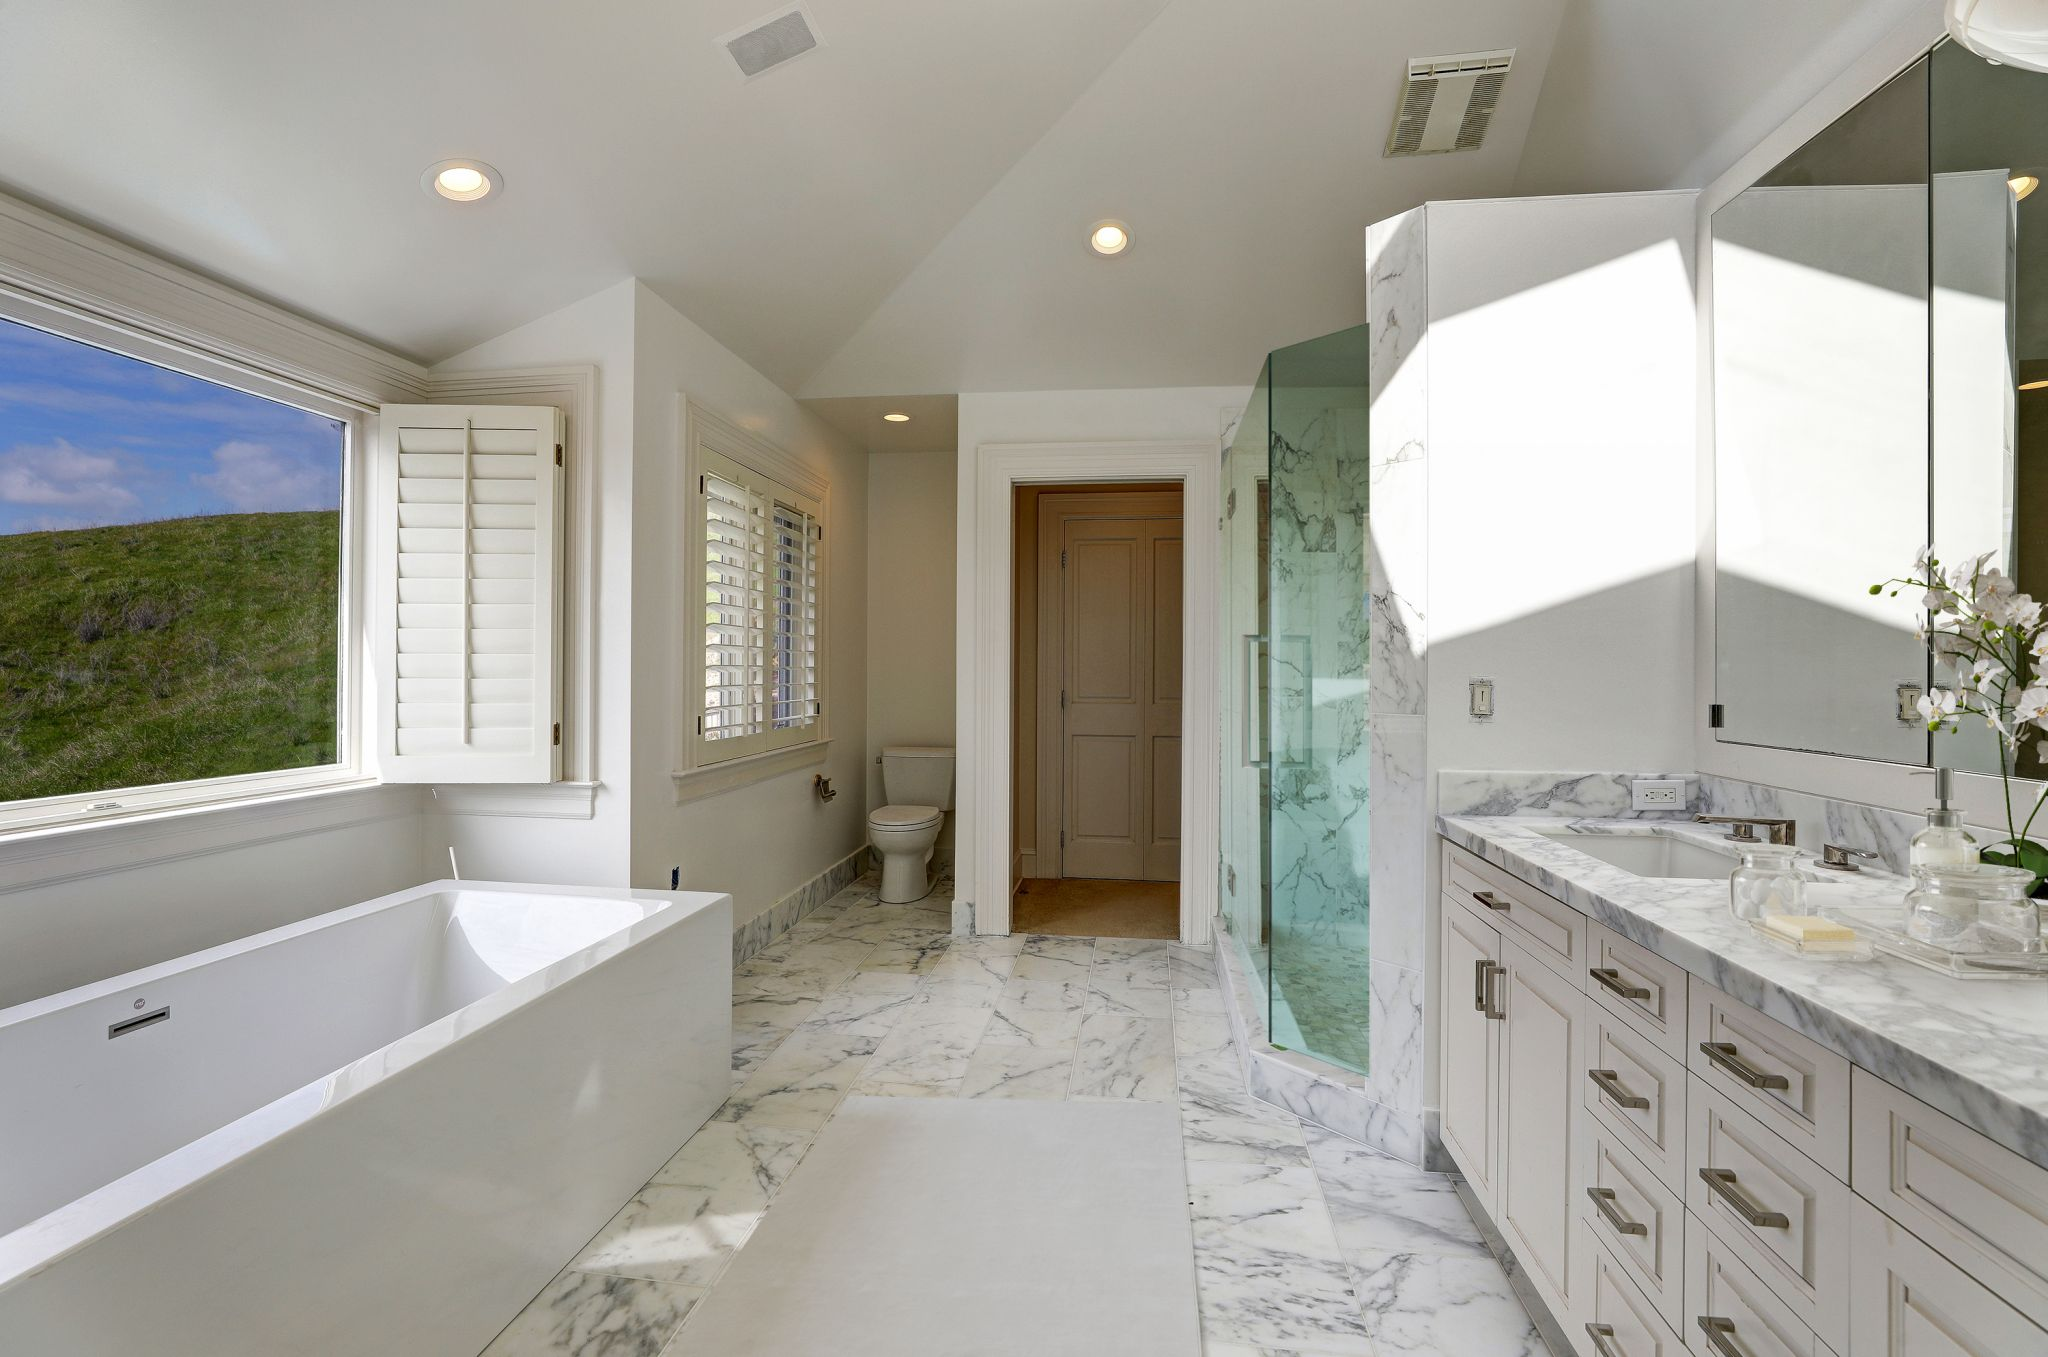 In the master bath there are marble finishes, radiant floors, plus both a shower and tub, complete with a view of Mt. Tam.